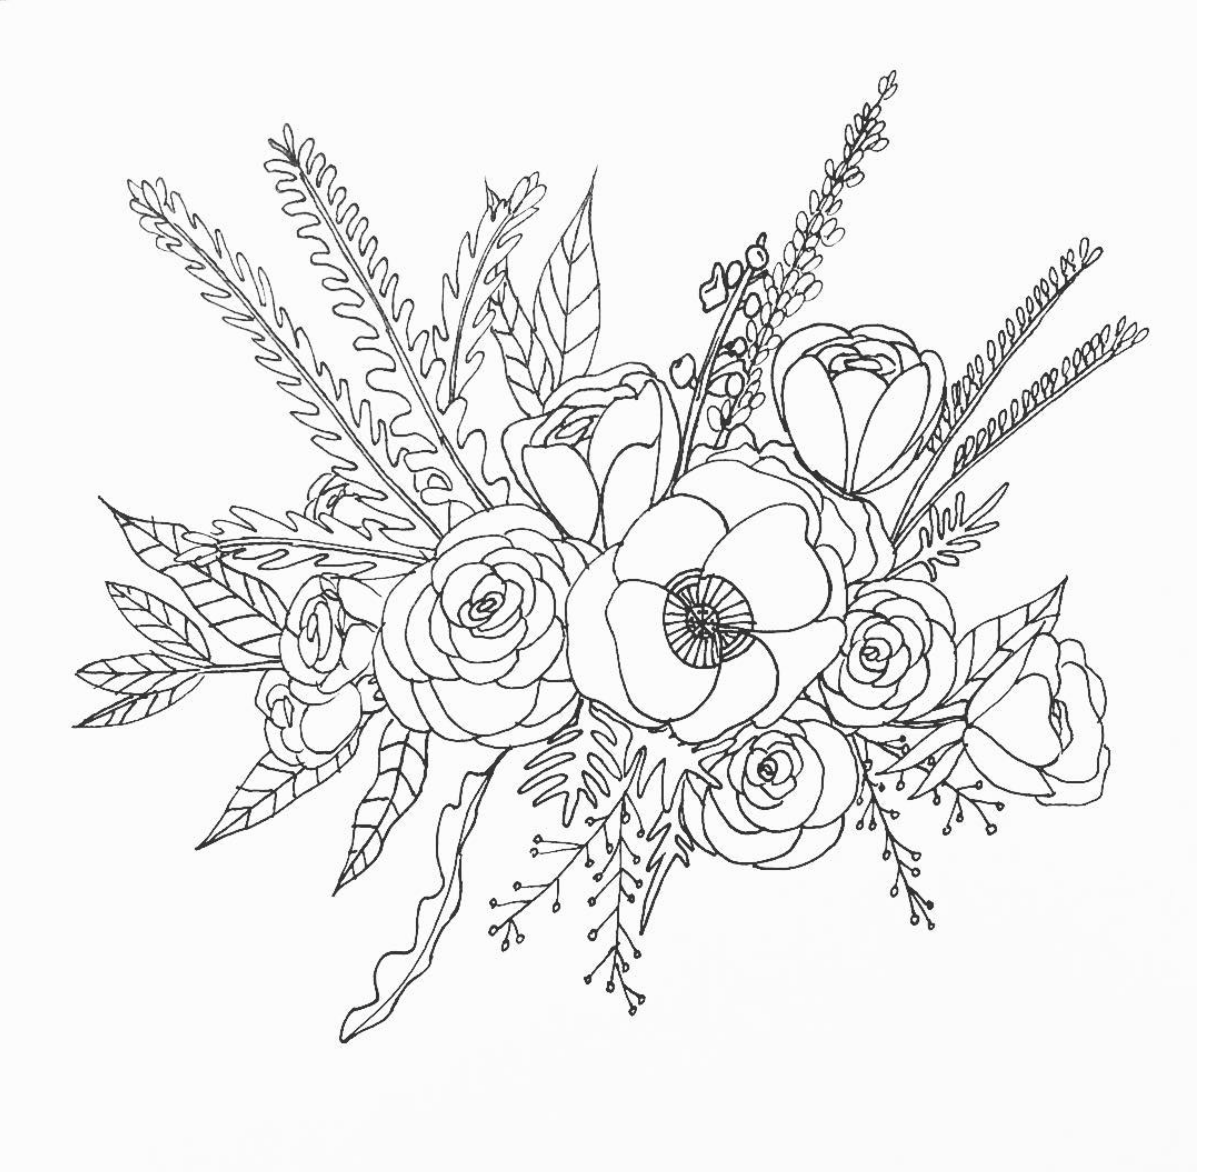 Wedding Flower Line Drawing : Line drawing flower illustration floral bouquet art